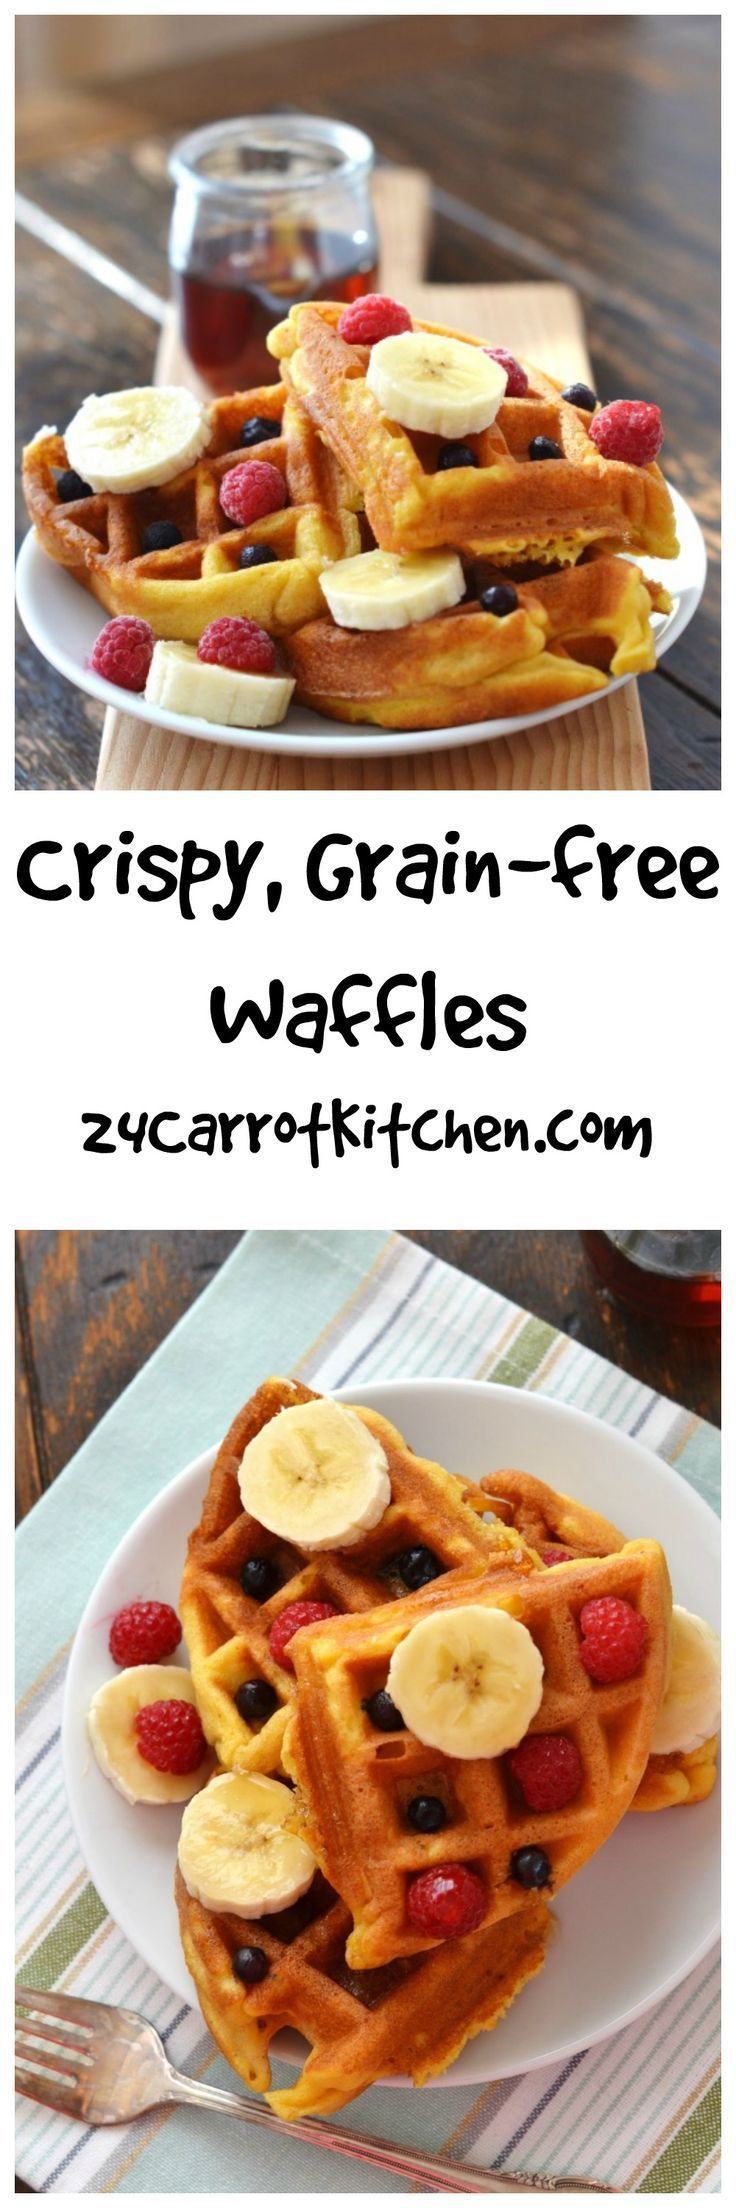 The BEST Crispy Paleo and Vegan Waffles! Grain-free, gluten-free, dairy free and kid friendly! Make extra and store in your freezer!